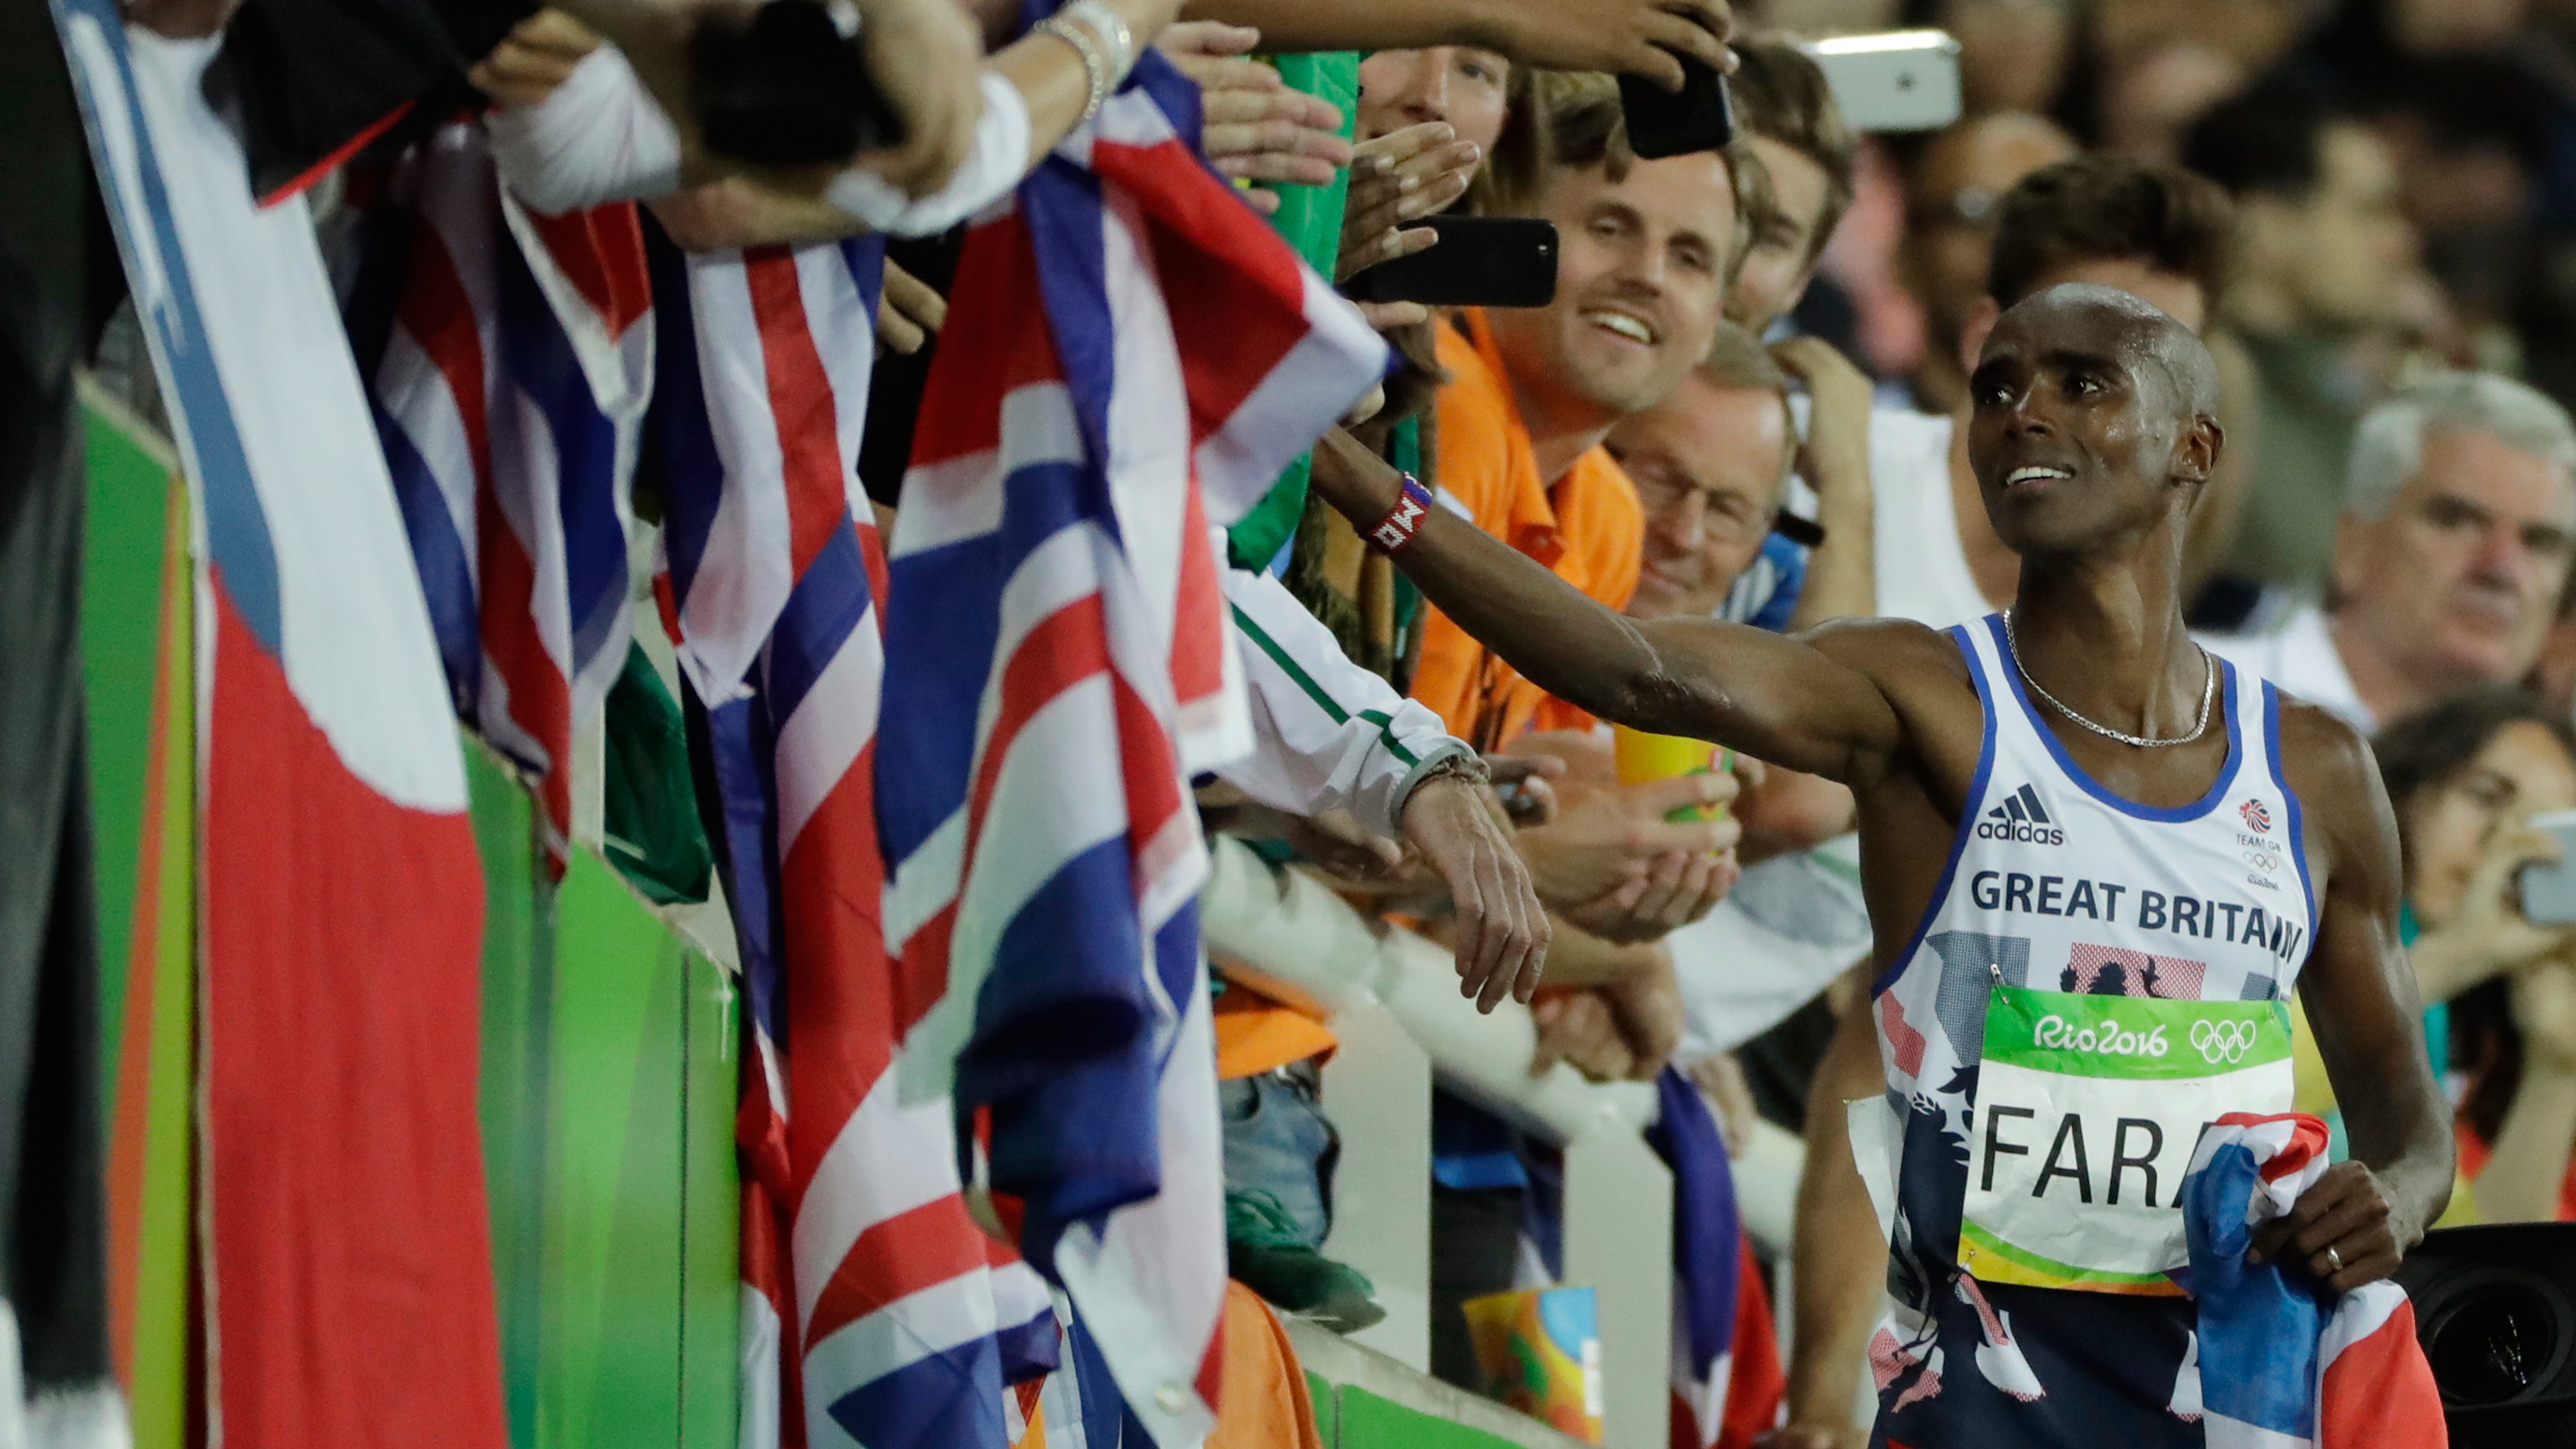 Britain's Mo Farah greets spectators after winning the gold medal in the men's 10,000-meter final during the athletics competitions of the 2016 Summer Olympics at the Olympic stadium in Rio de Janeiro, Brazil, Saturday, Aug. 13, 2016. (AP Photo/Jae C. Hong)